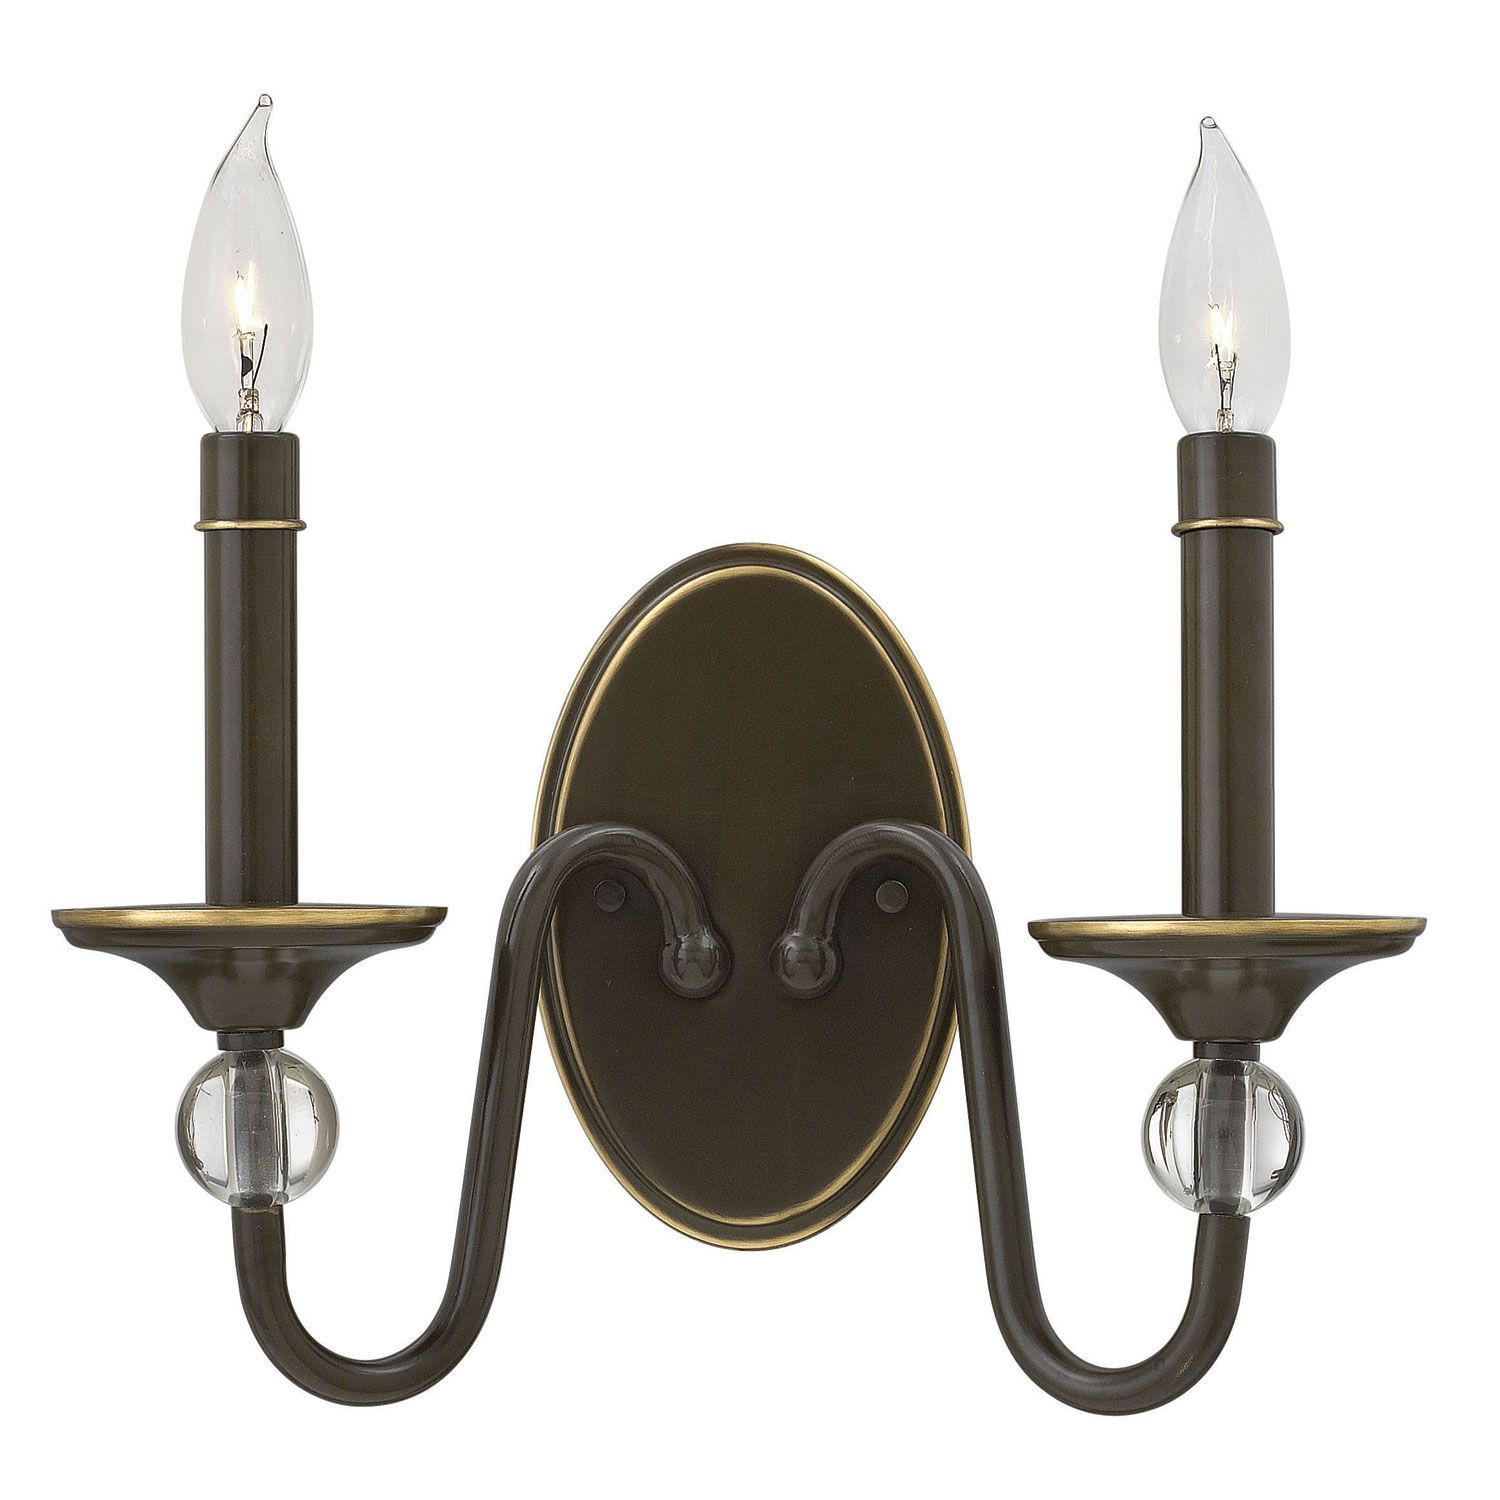 Hinkley eleanor light oiled bronze two light wall sconce light eleanor light oiled bronze two light wall sconce hinkley 2 light armed candle wall sconces aloadofball Image collections